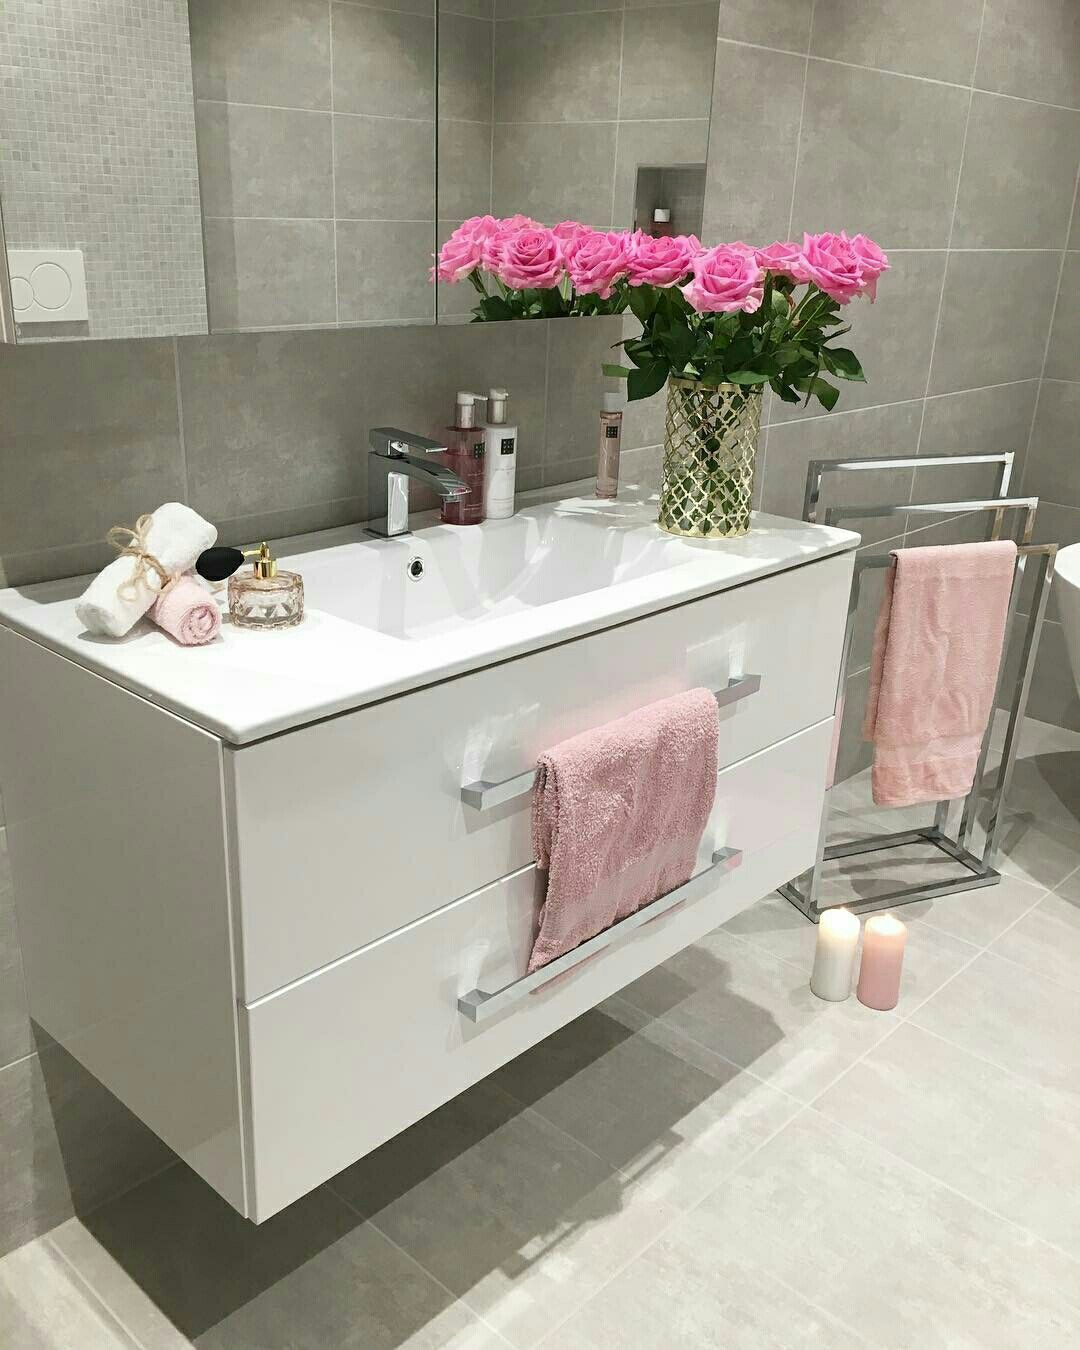 Pin By Dii Gildy On Ideas For The House Pink Bathroom Decor